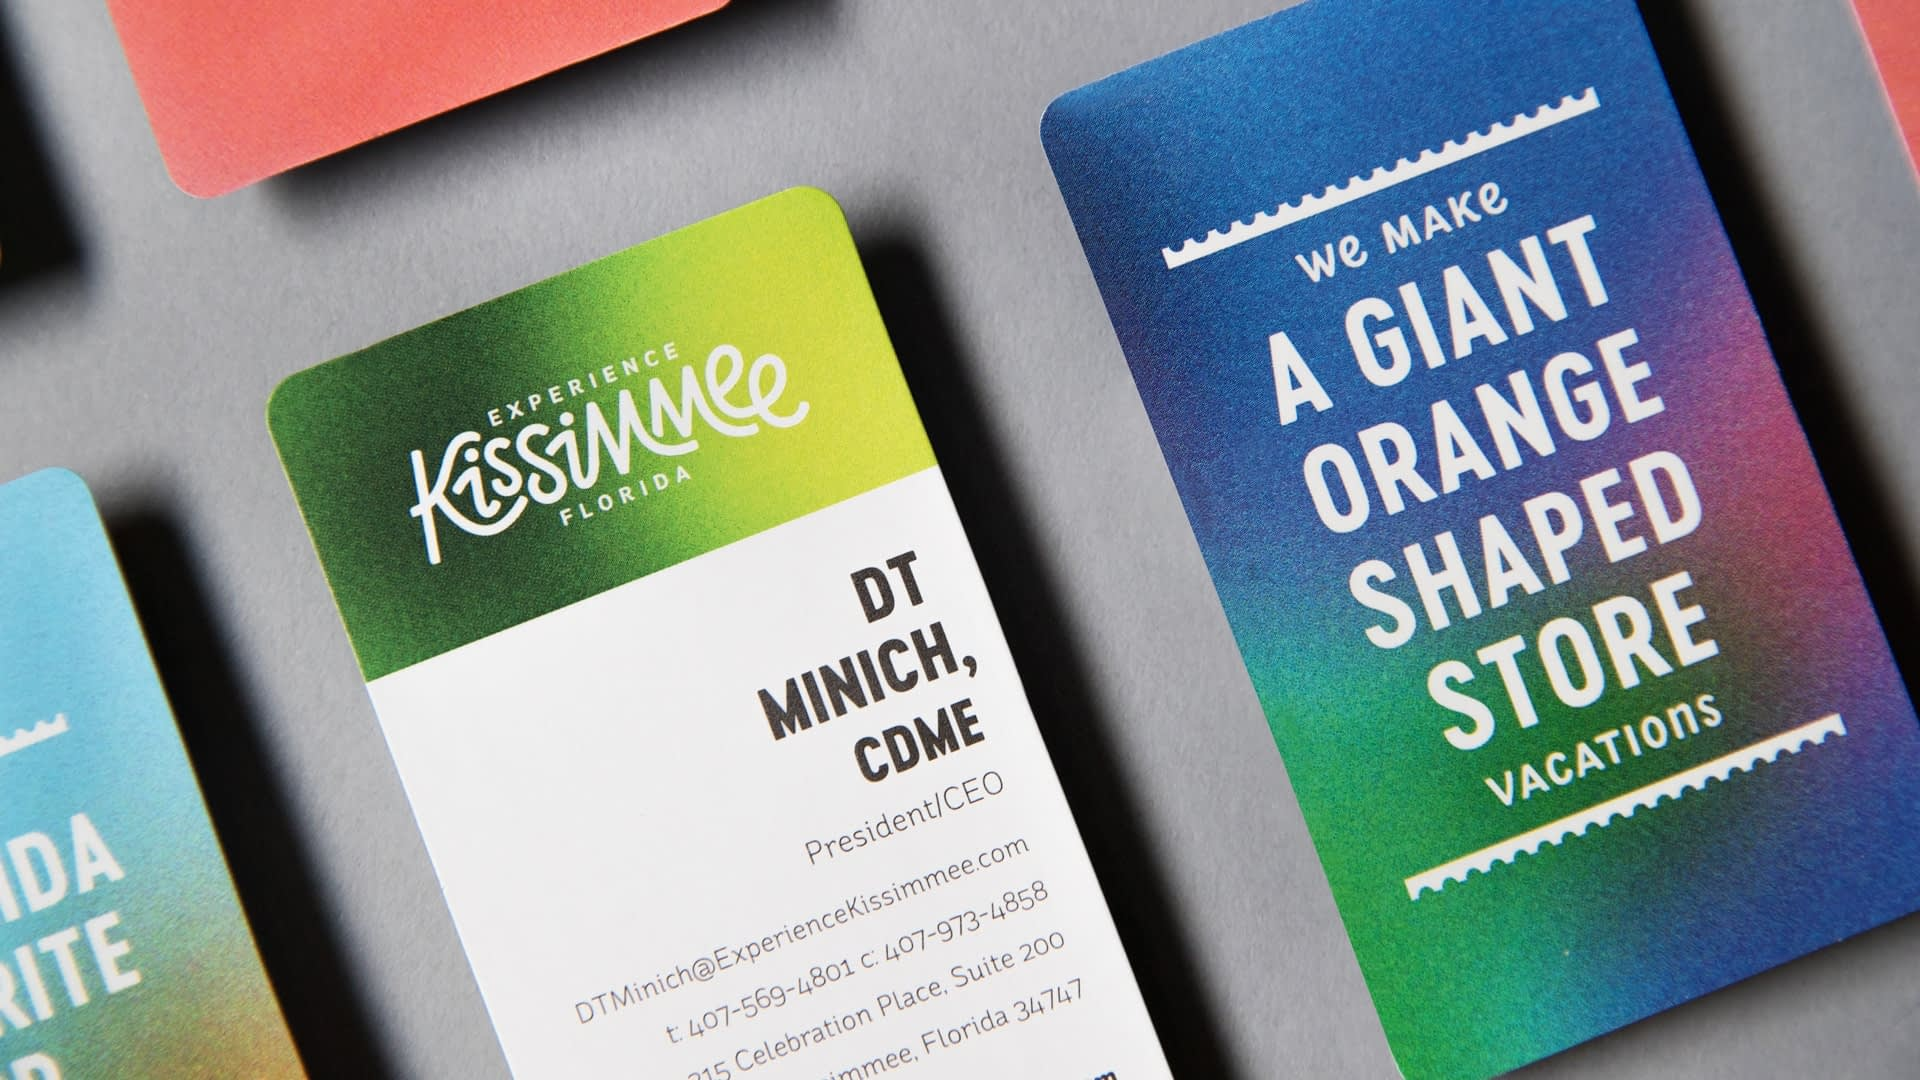 Experience Kissimmee Destination marketing and rebrand - business cards